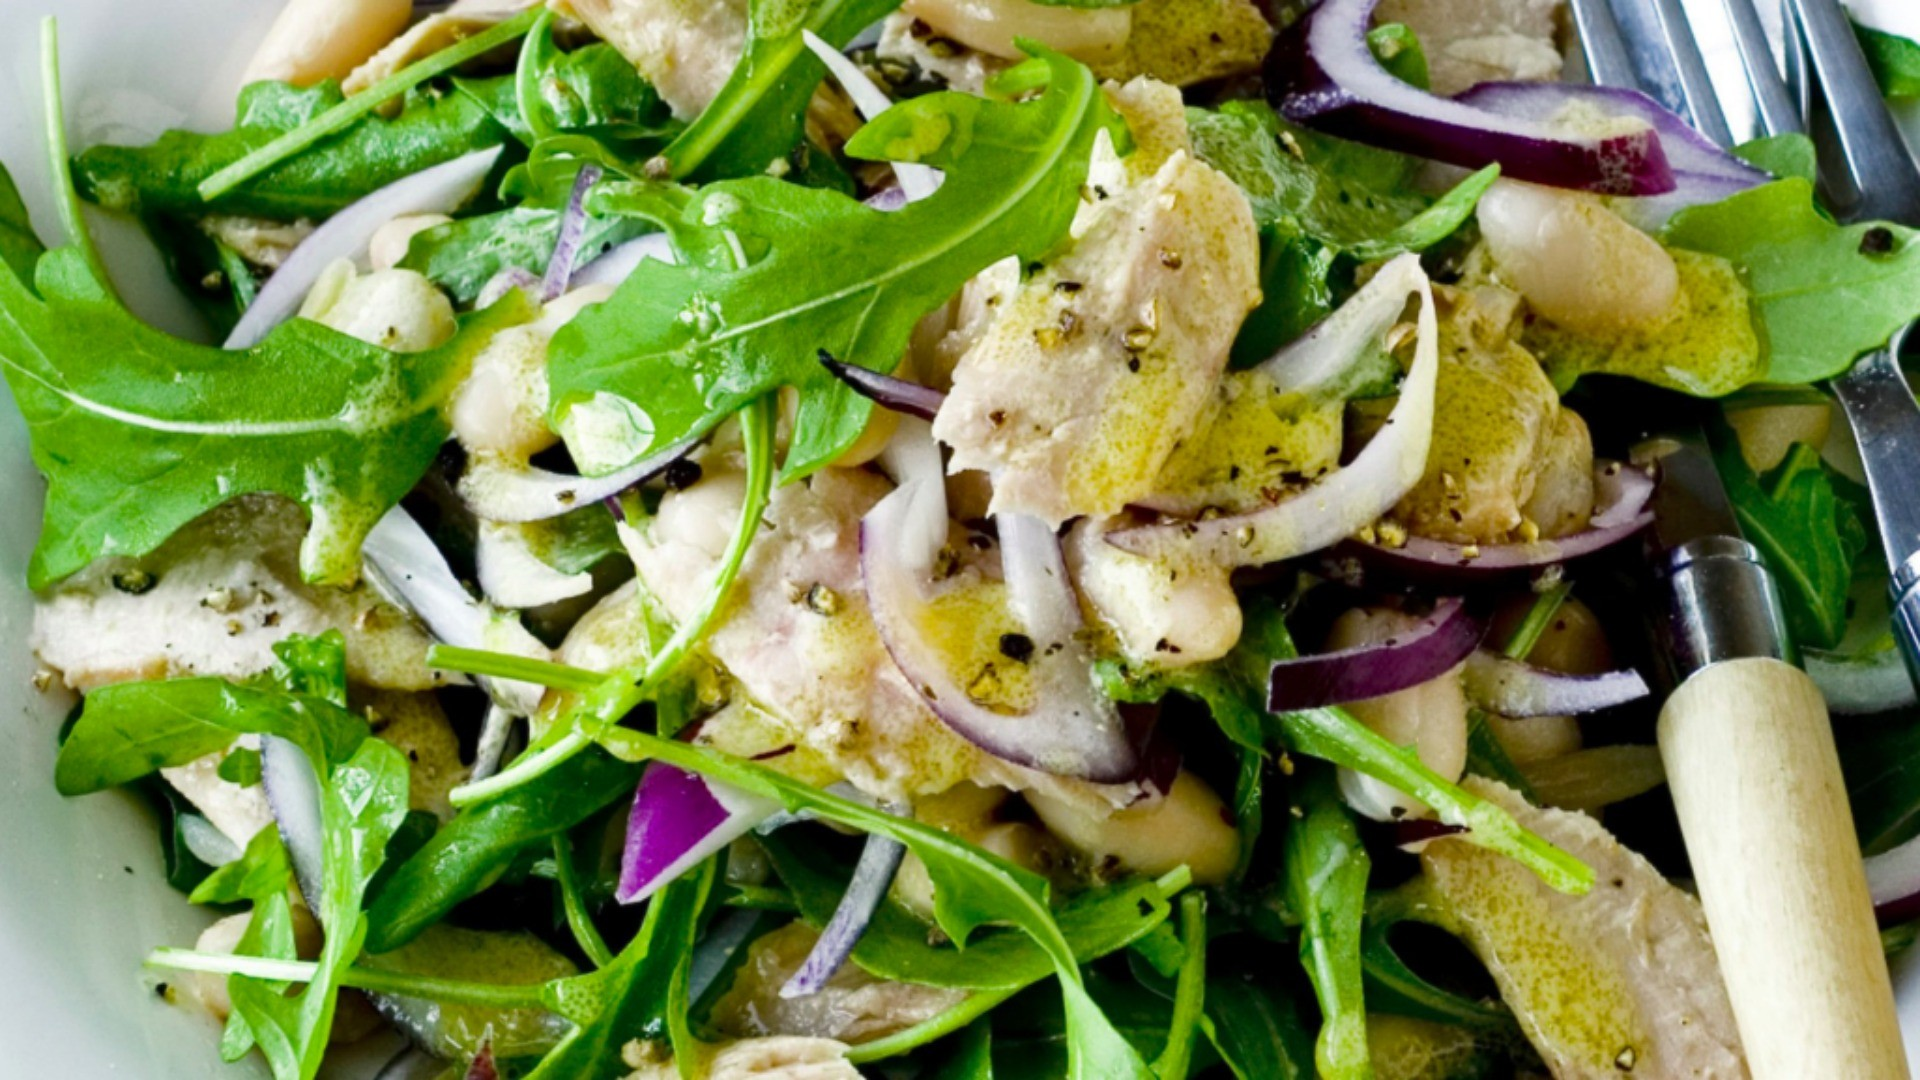 The perfect protein-rich salad for warm summer evenings